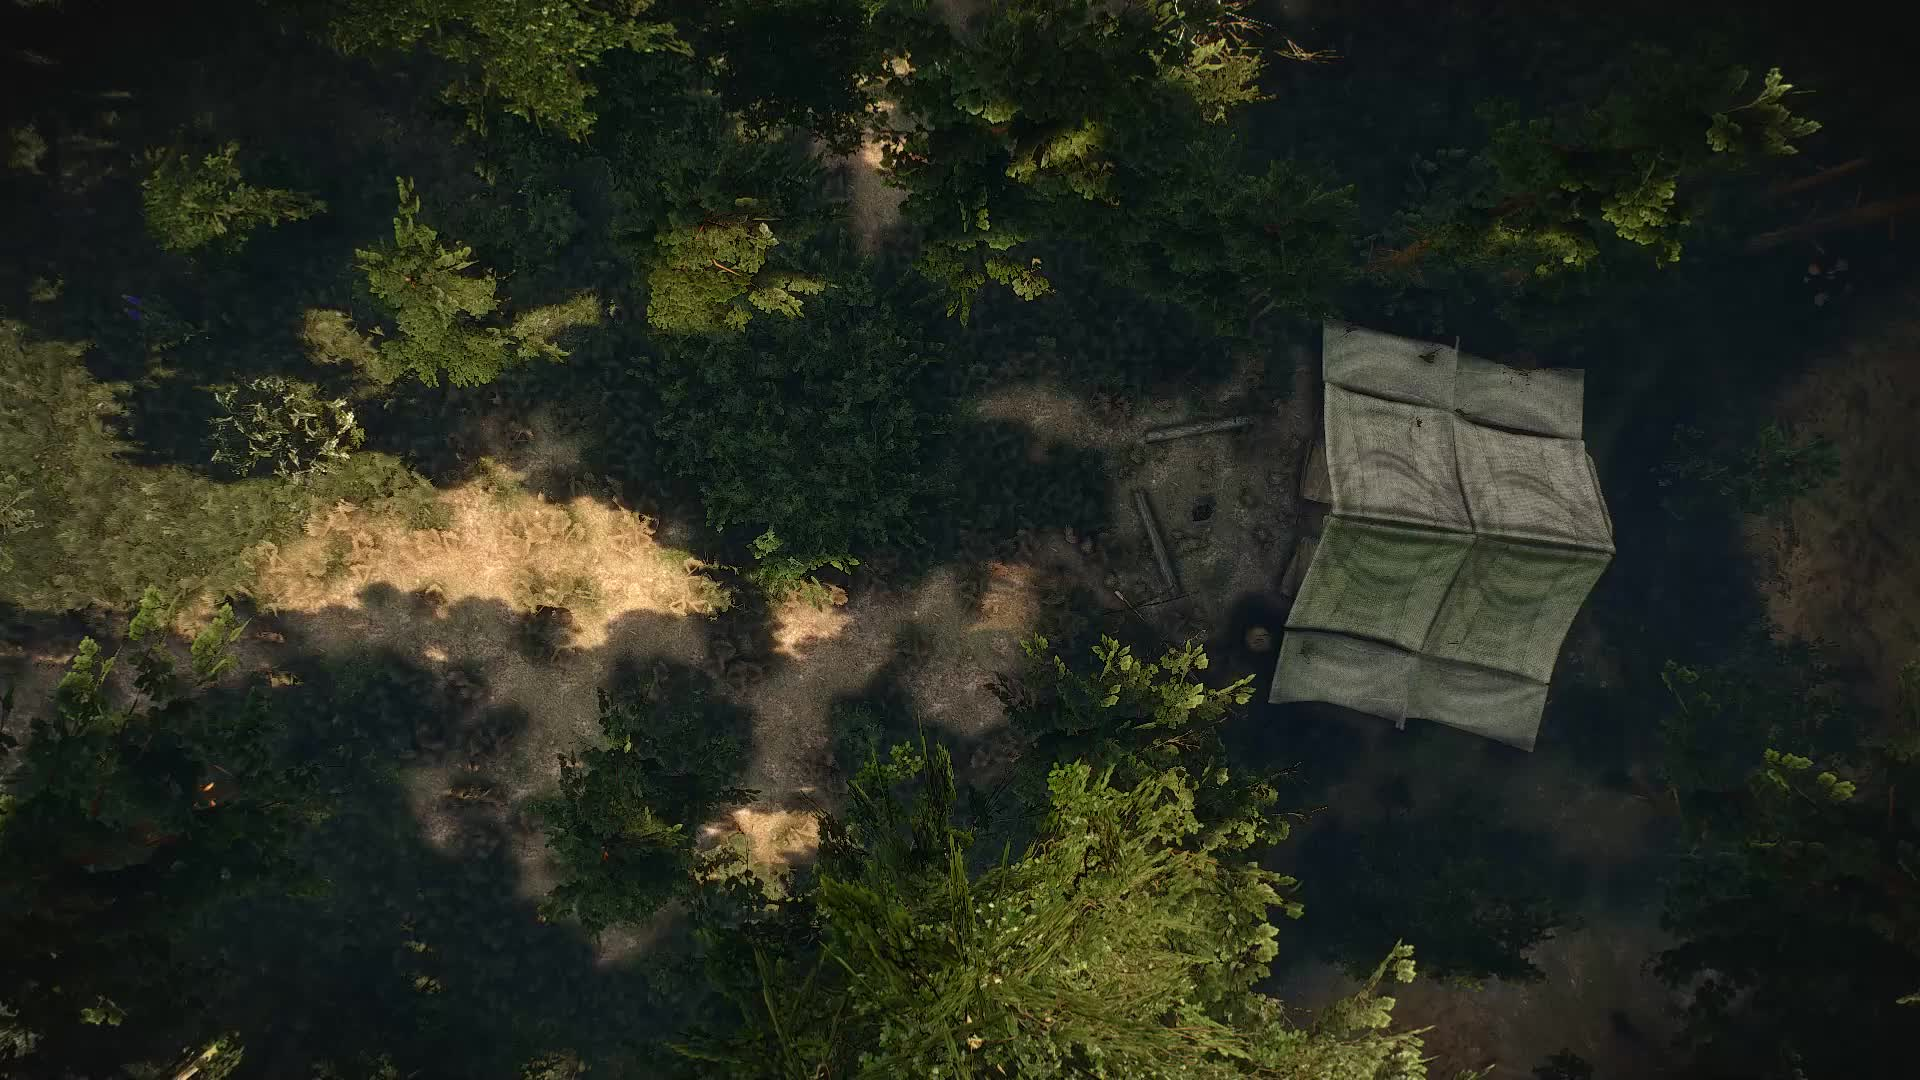 Gaming Battle Maps, Gaming Battlemap, People & Blogs, dnd, dnd battlemap, gaming, rpg top view, table top, top view, top view map, witcher, witcher 3 battlemap, witcher 3 view, Dnd Battlemap - Camp GIFs